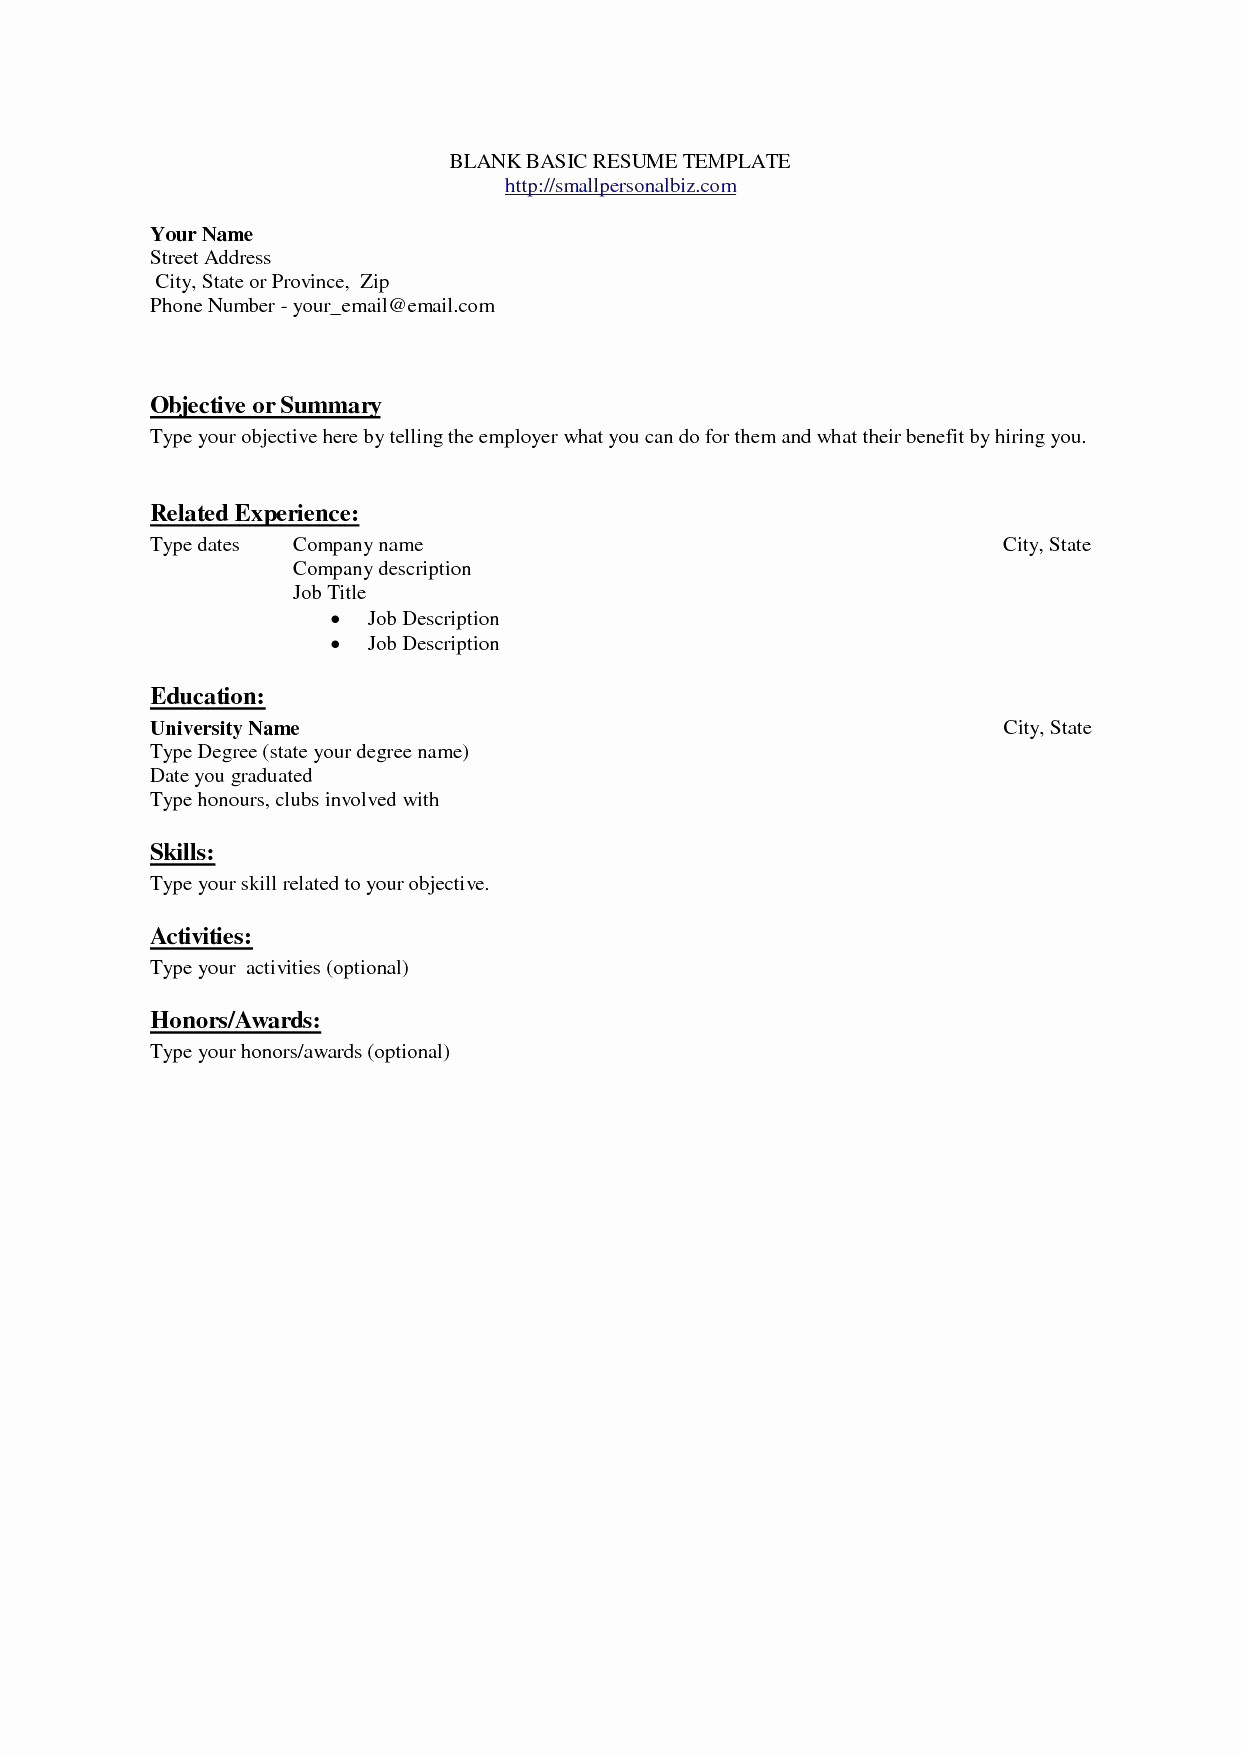 Attached is My Resume - Cover Letter Please Find Refrence attached Please Find My Resume